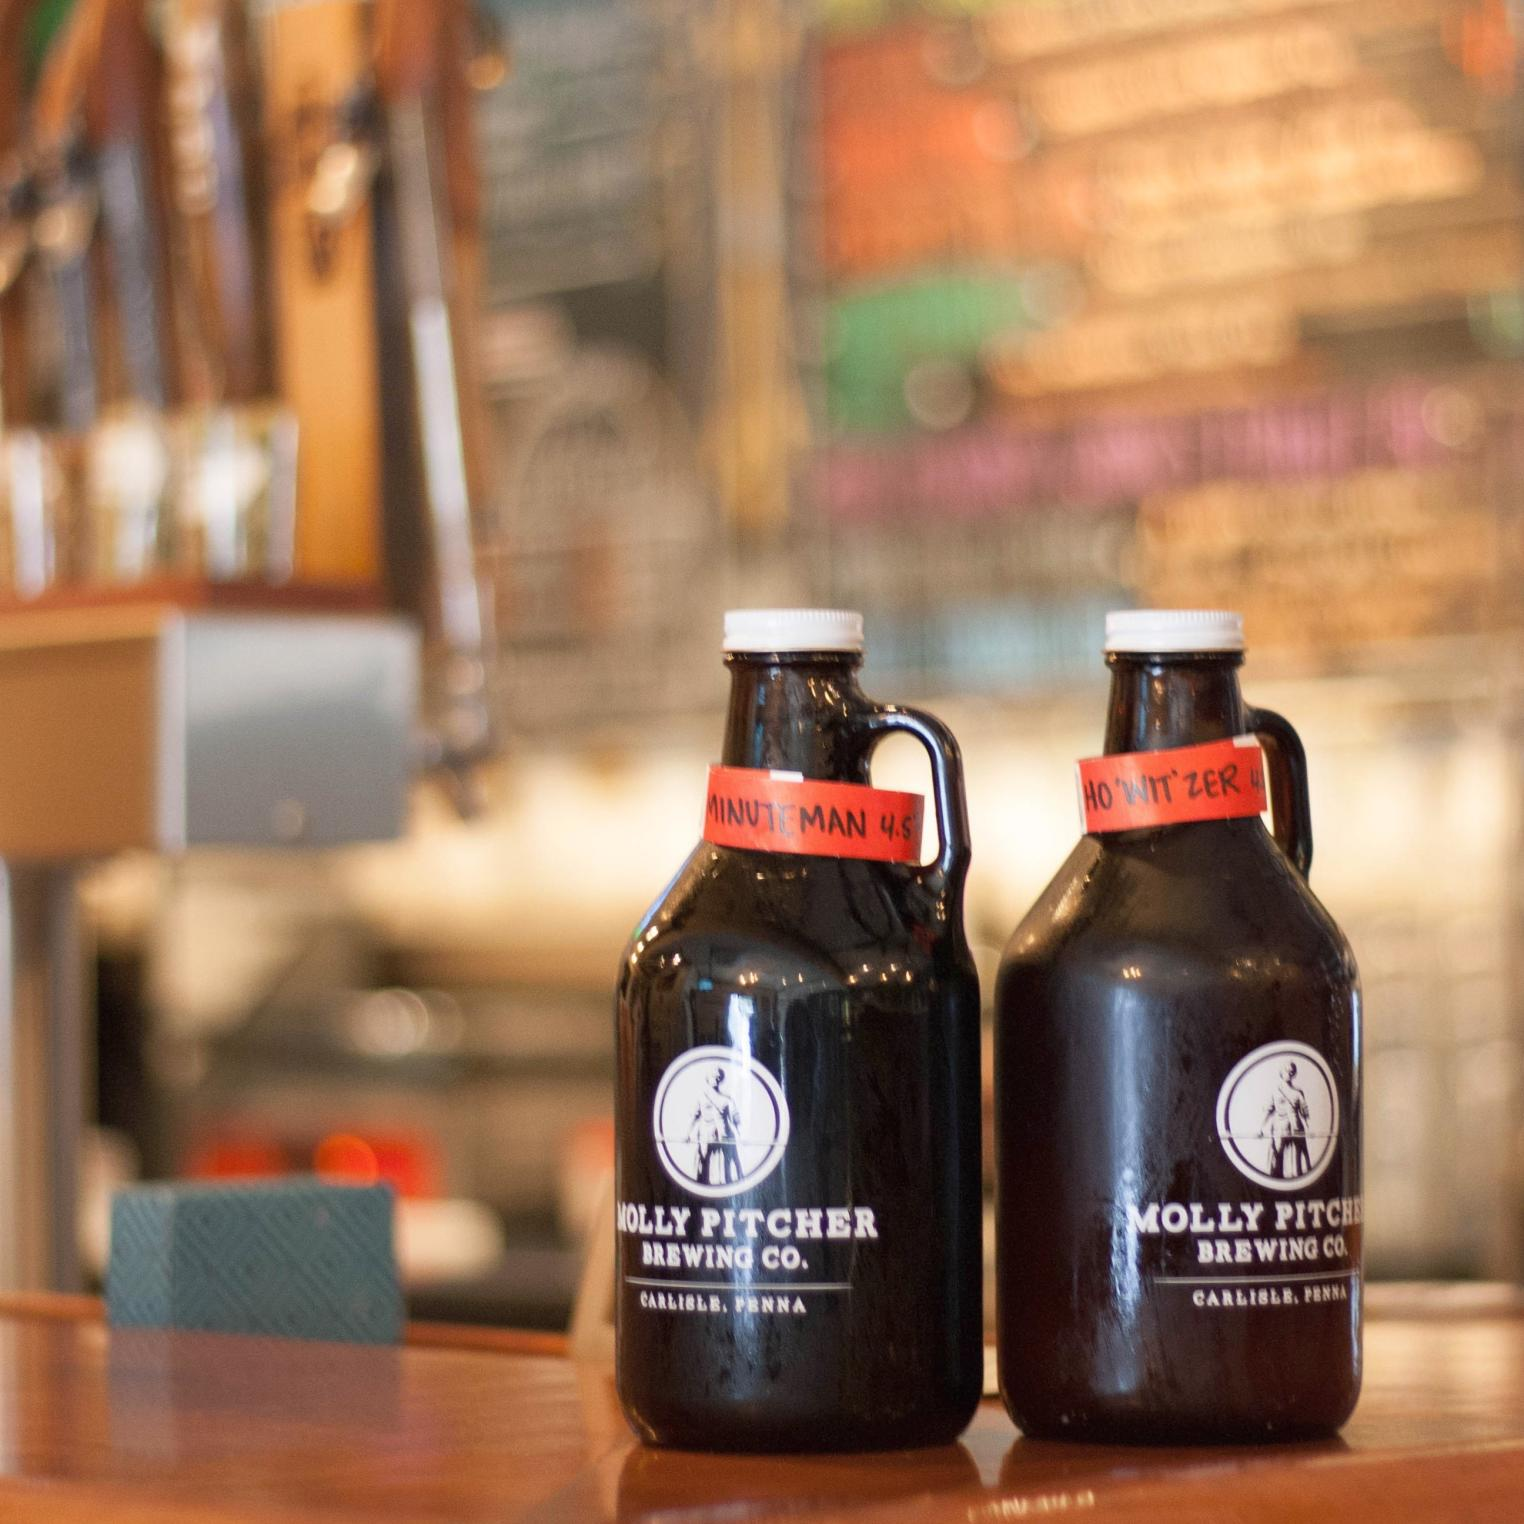 Molly Pitcher Brewing Co.